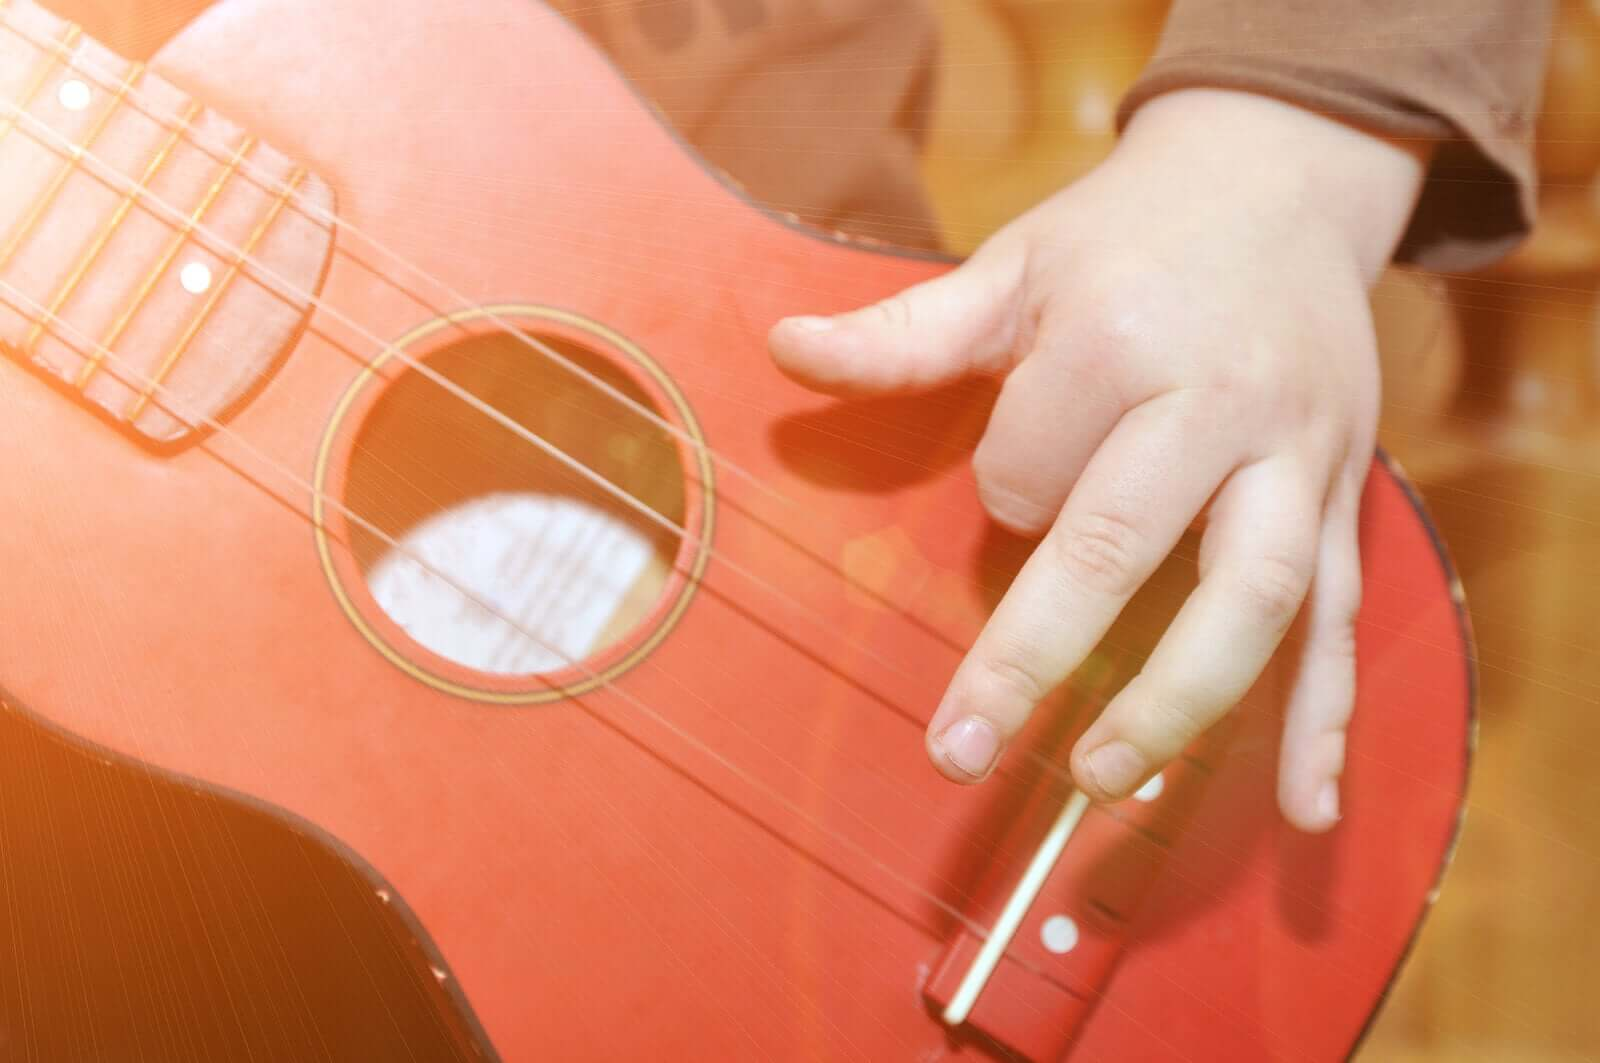 How to Make Your Own Musical Instruments